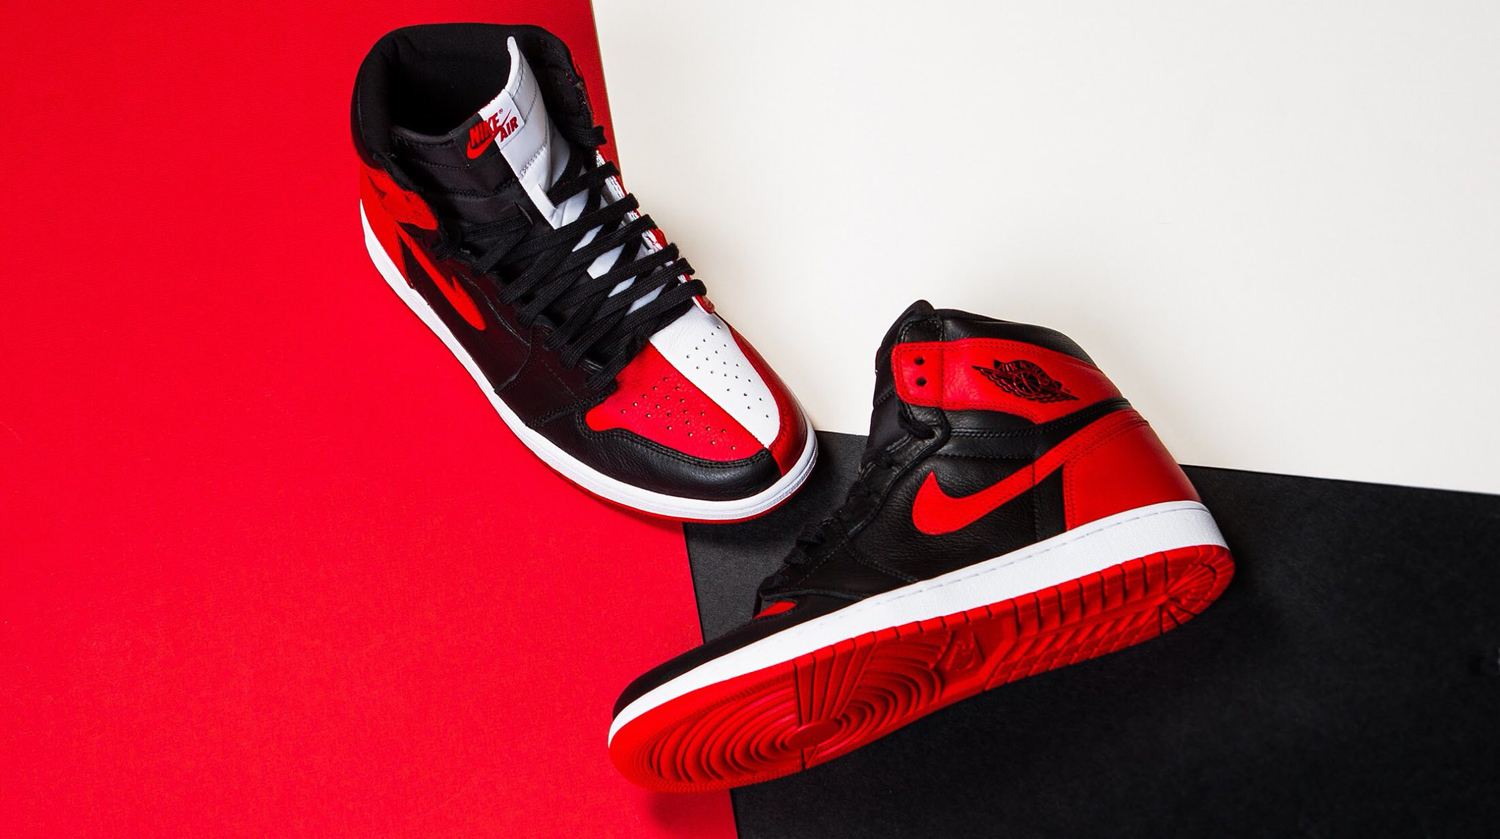 fc729a0b62635a Apparel to Match Jordan 1 Homage to Home